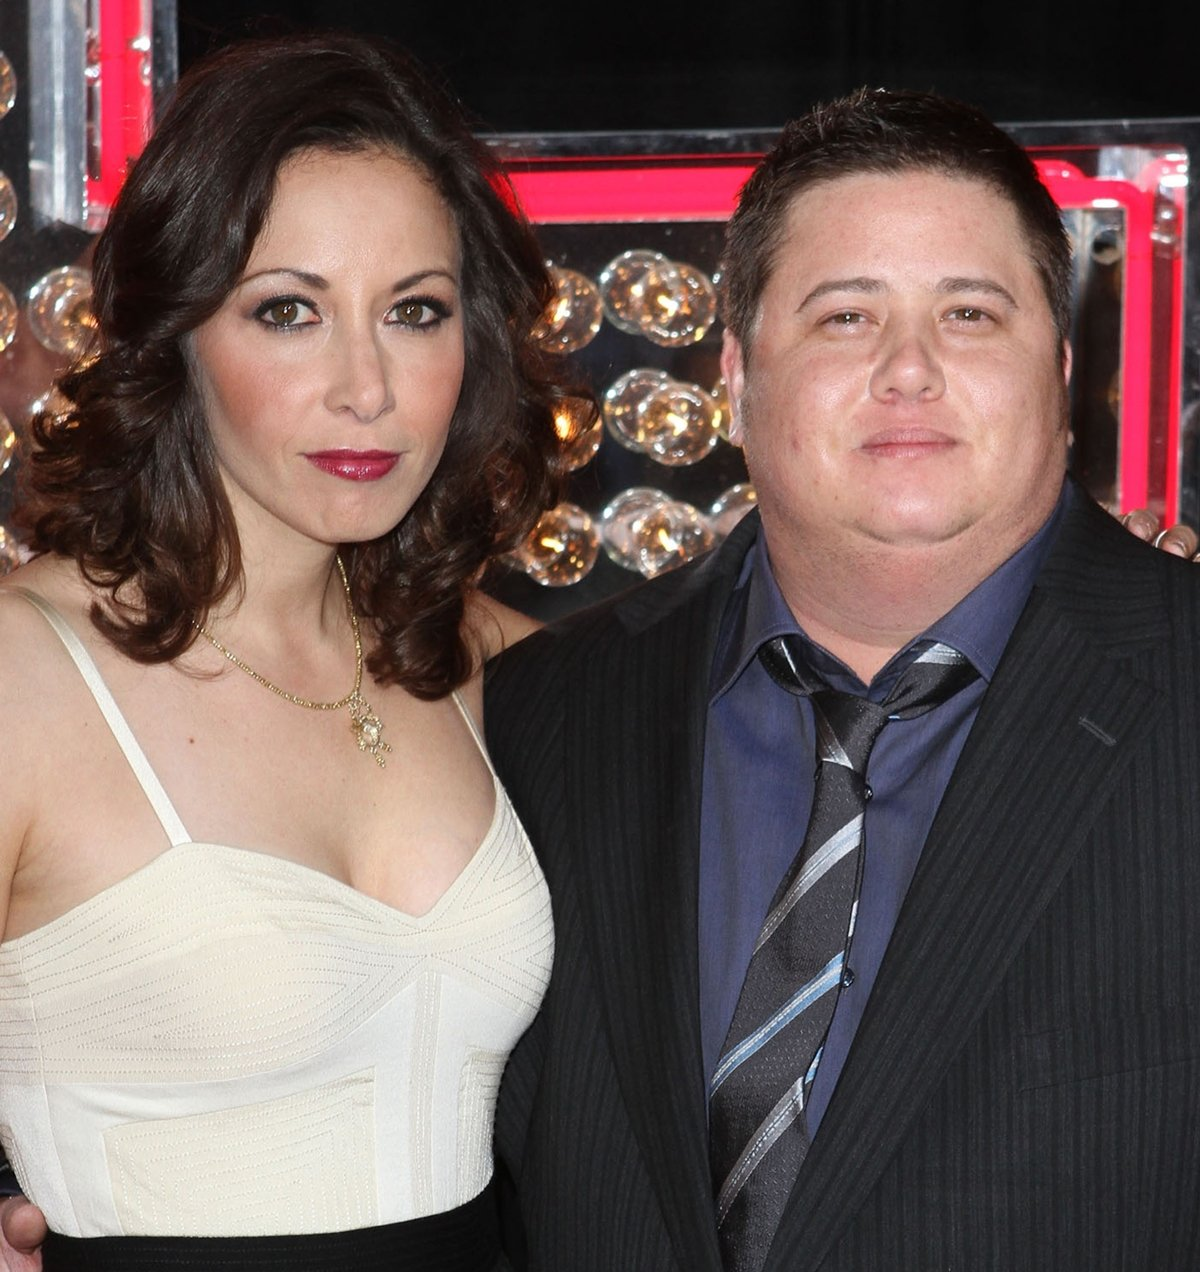 Chaz Bono and Jennifer Elia dated from 2005 until breaking up in 2011